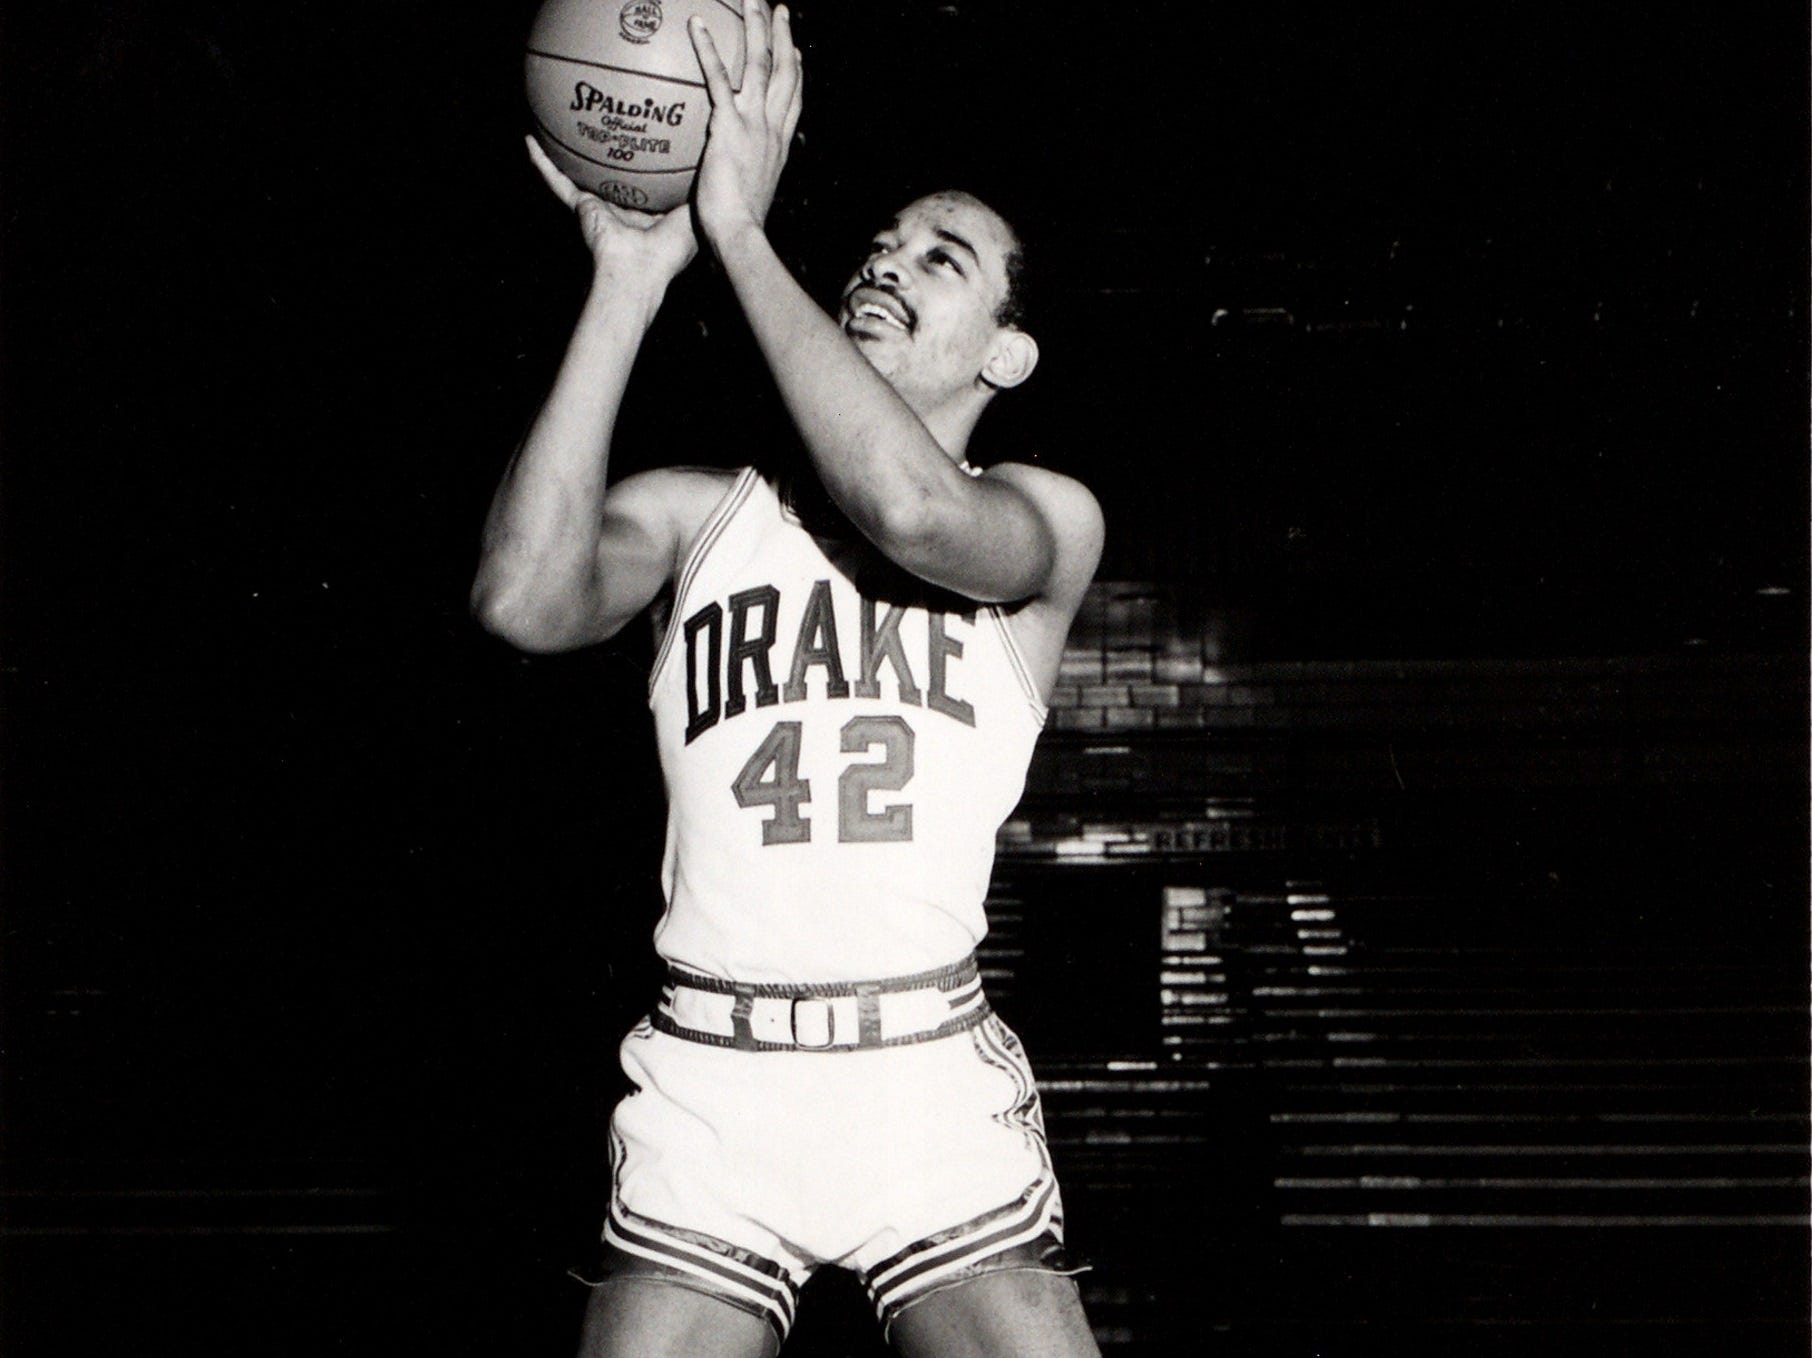 Willie Wise was a 6-5 senior forward on the 1968-69 Drake basketball team that made it to the NCAA Tournament's Final Four. He grabbed a team-high 11.4 rebounds and averaged 14.6 points that year.